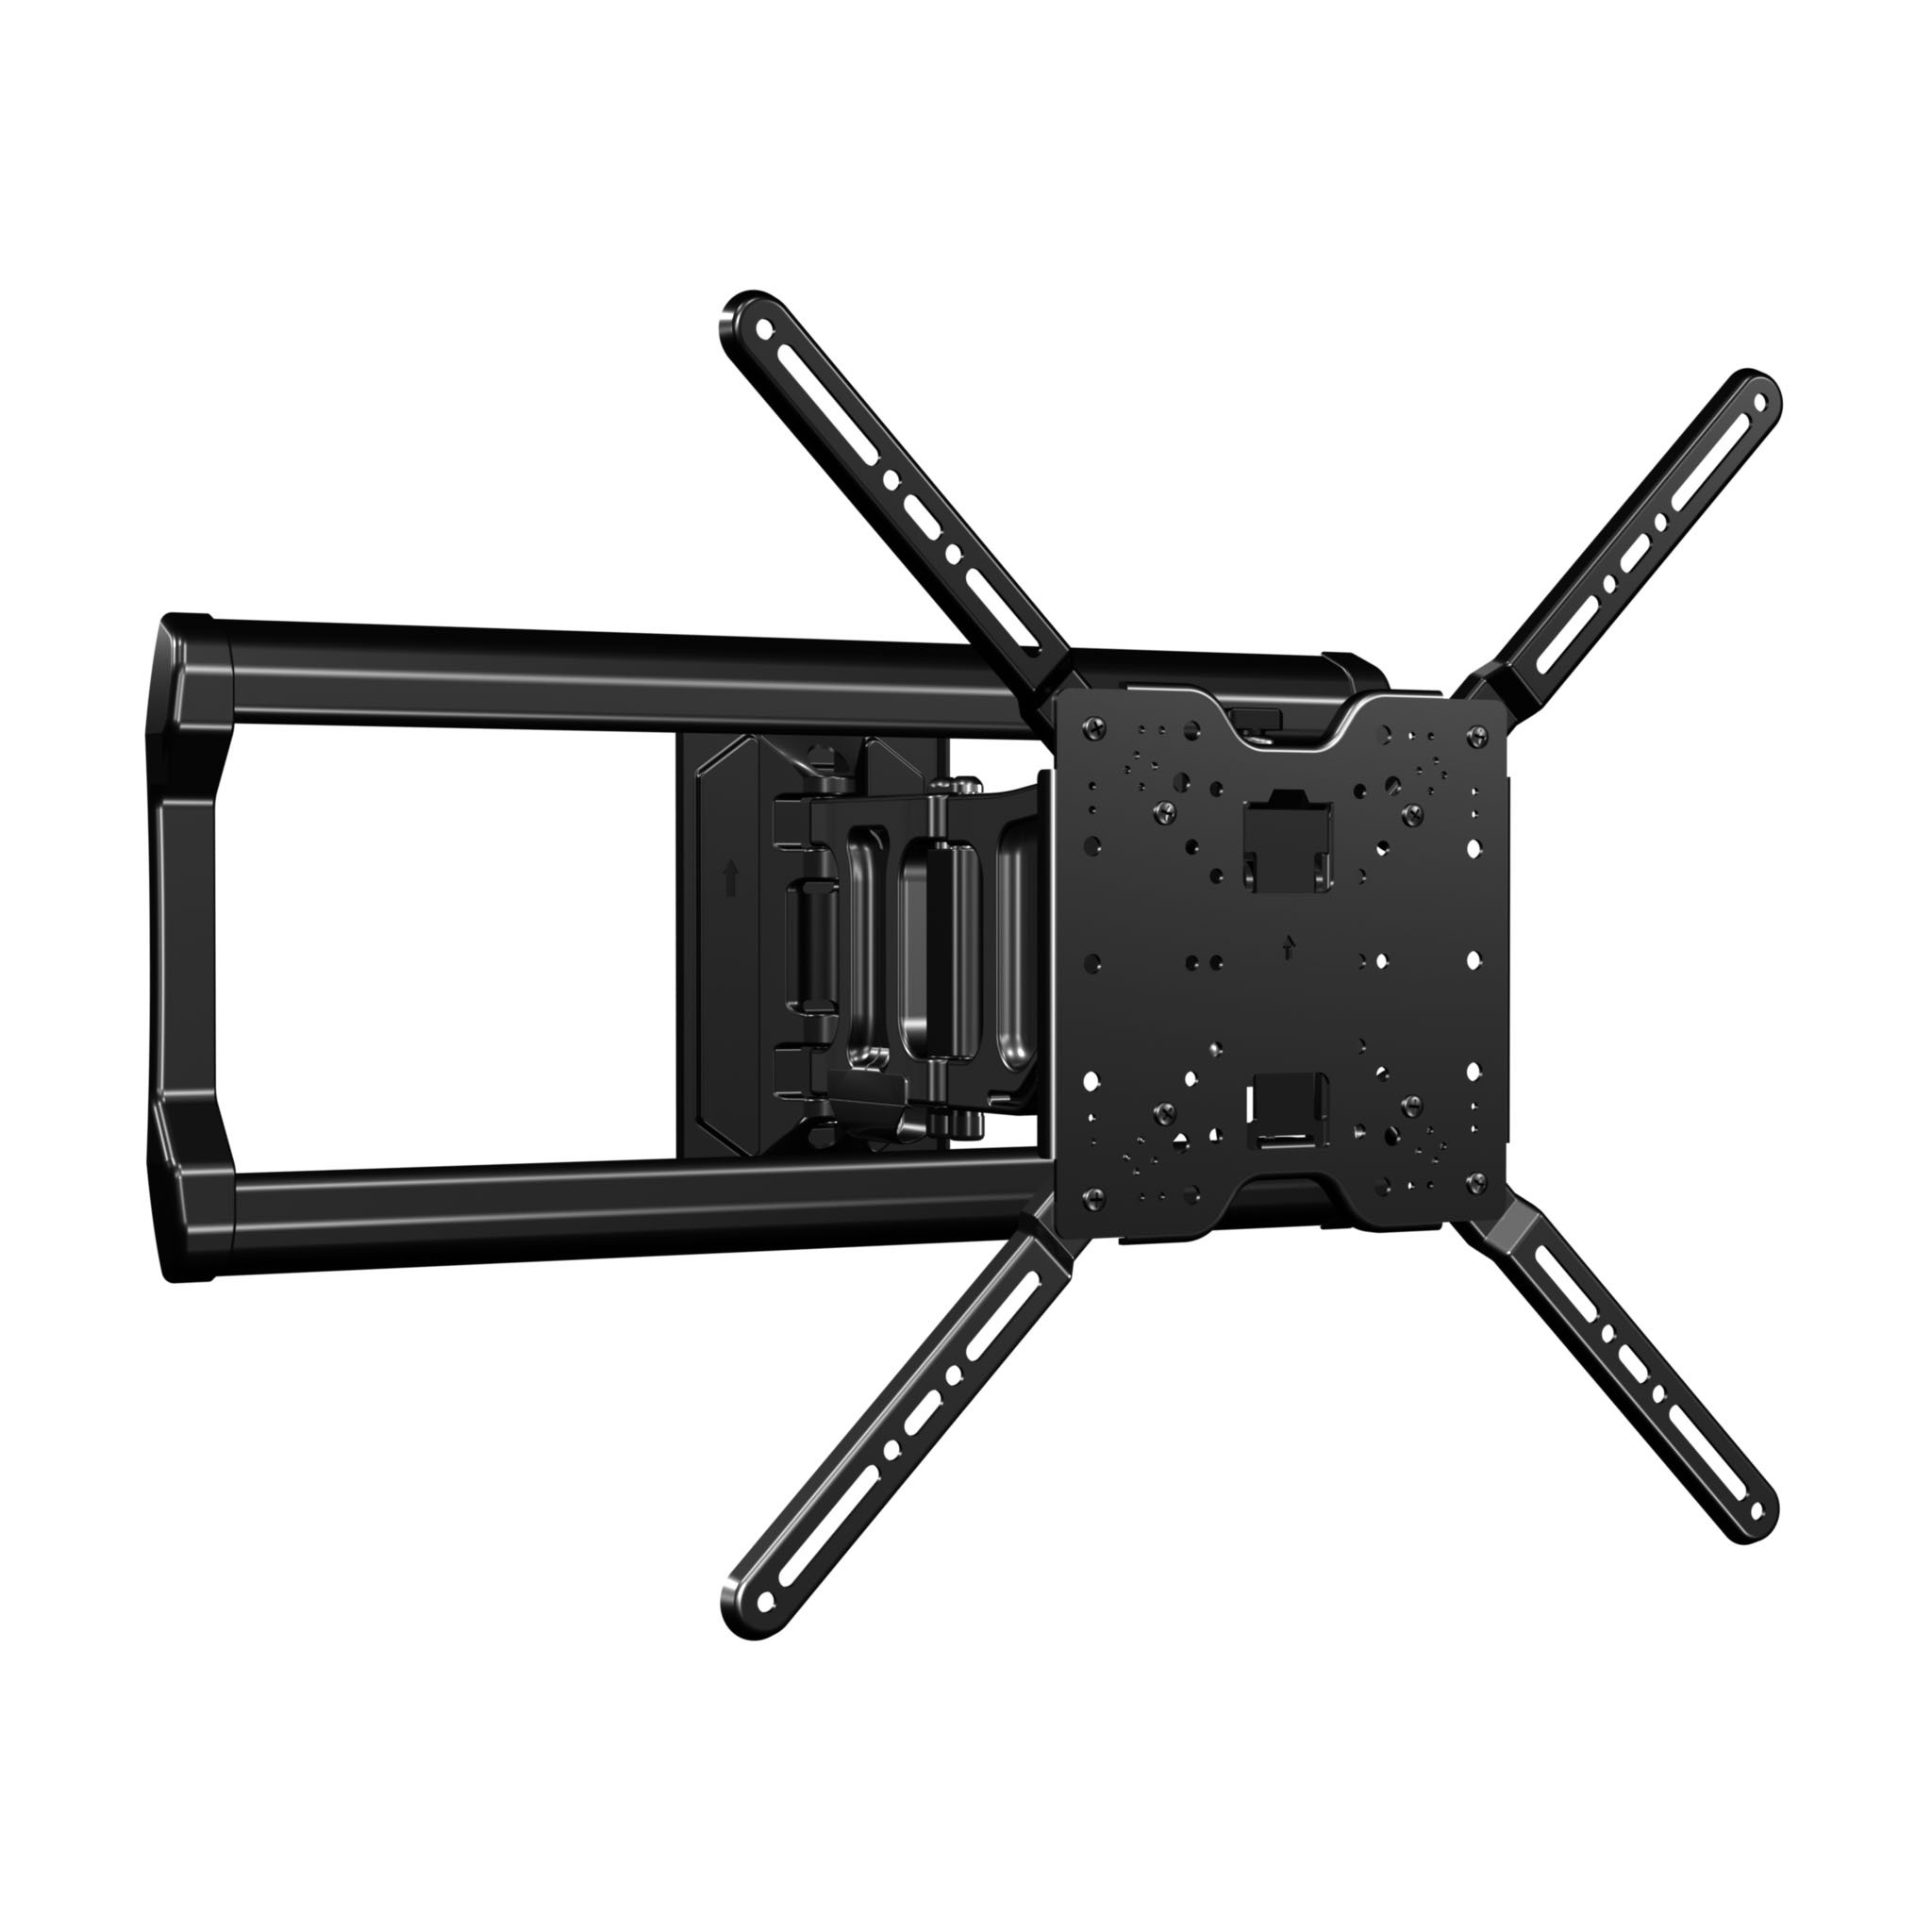 Sanus Full-Motion TV Wall Mount for 37'' to 80'' TVs Extends 18'' & Fits Studs Up to 24'' - Bracket fits most LED, LCD, OLED, and Plasma Flat Screen TVs w/ VESA Patterns up to 600 x 400 - OLF18-B1 by Sanus